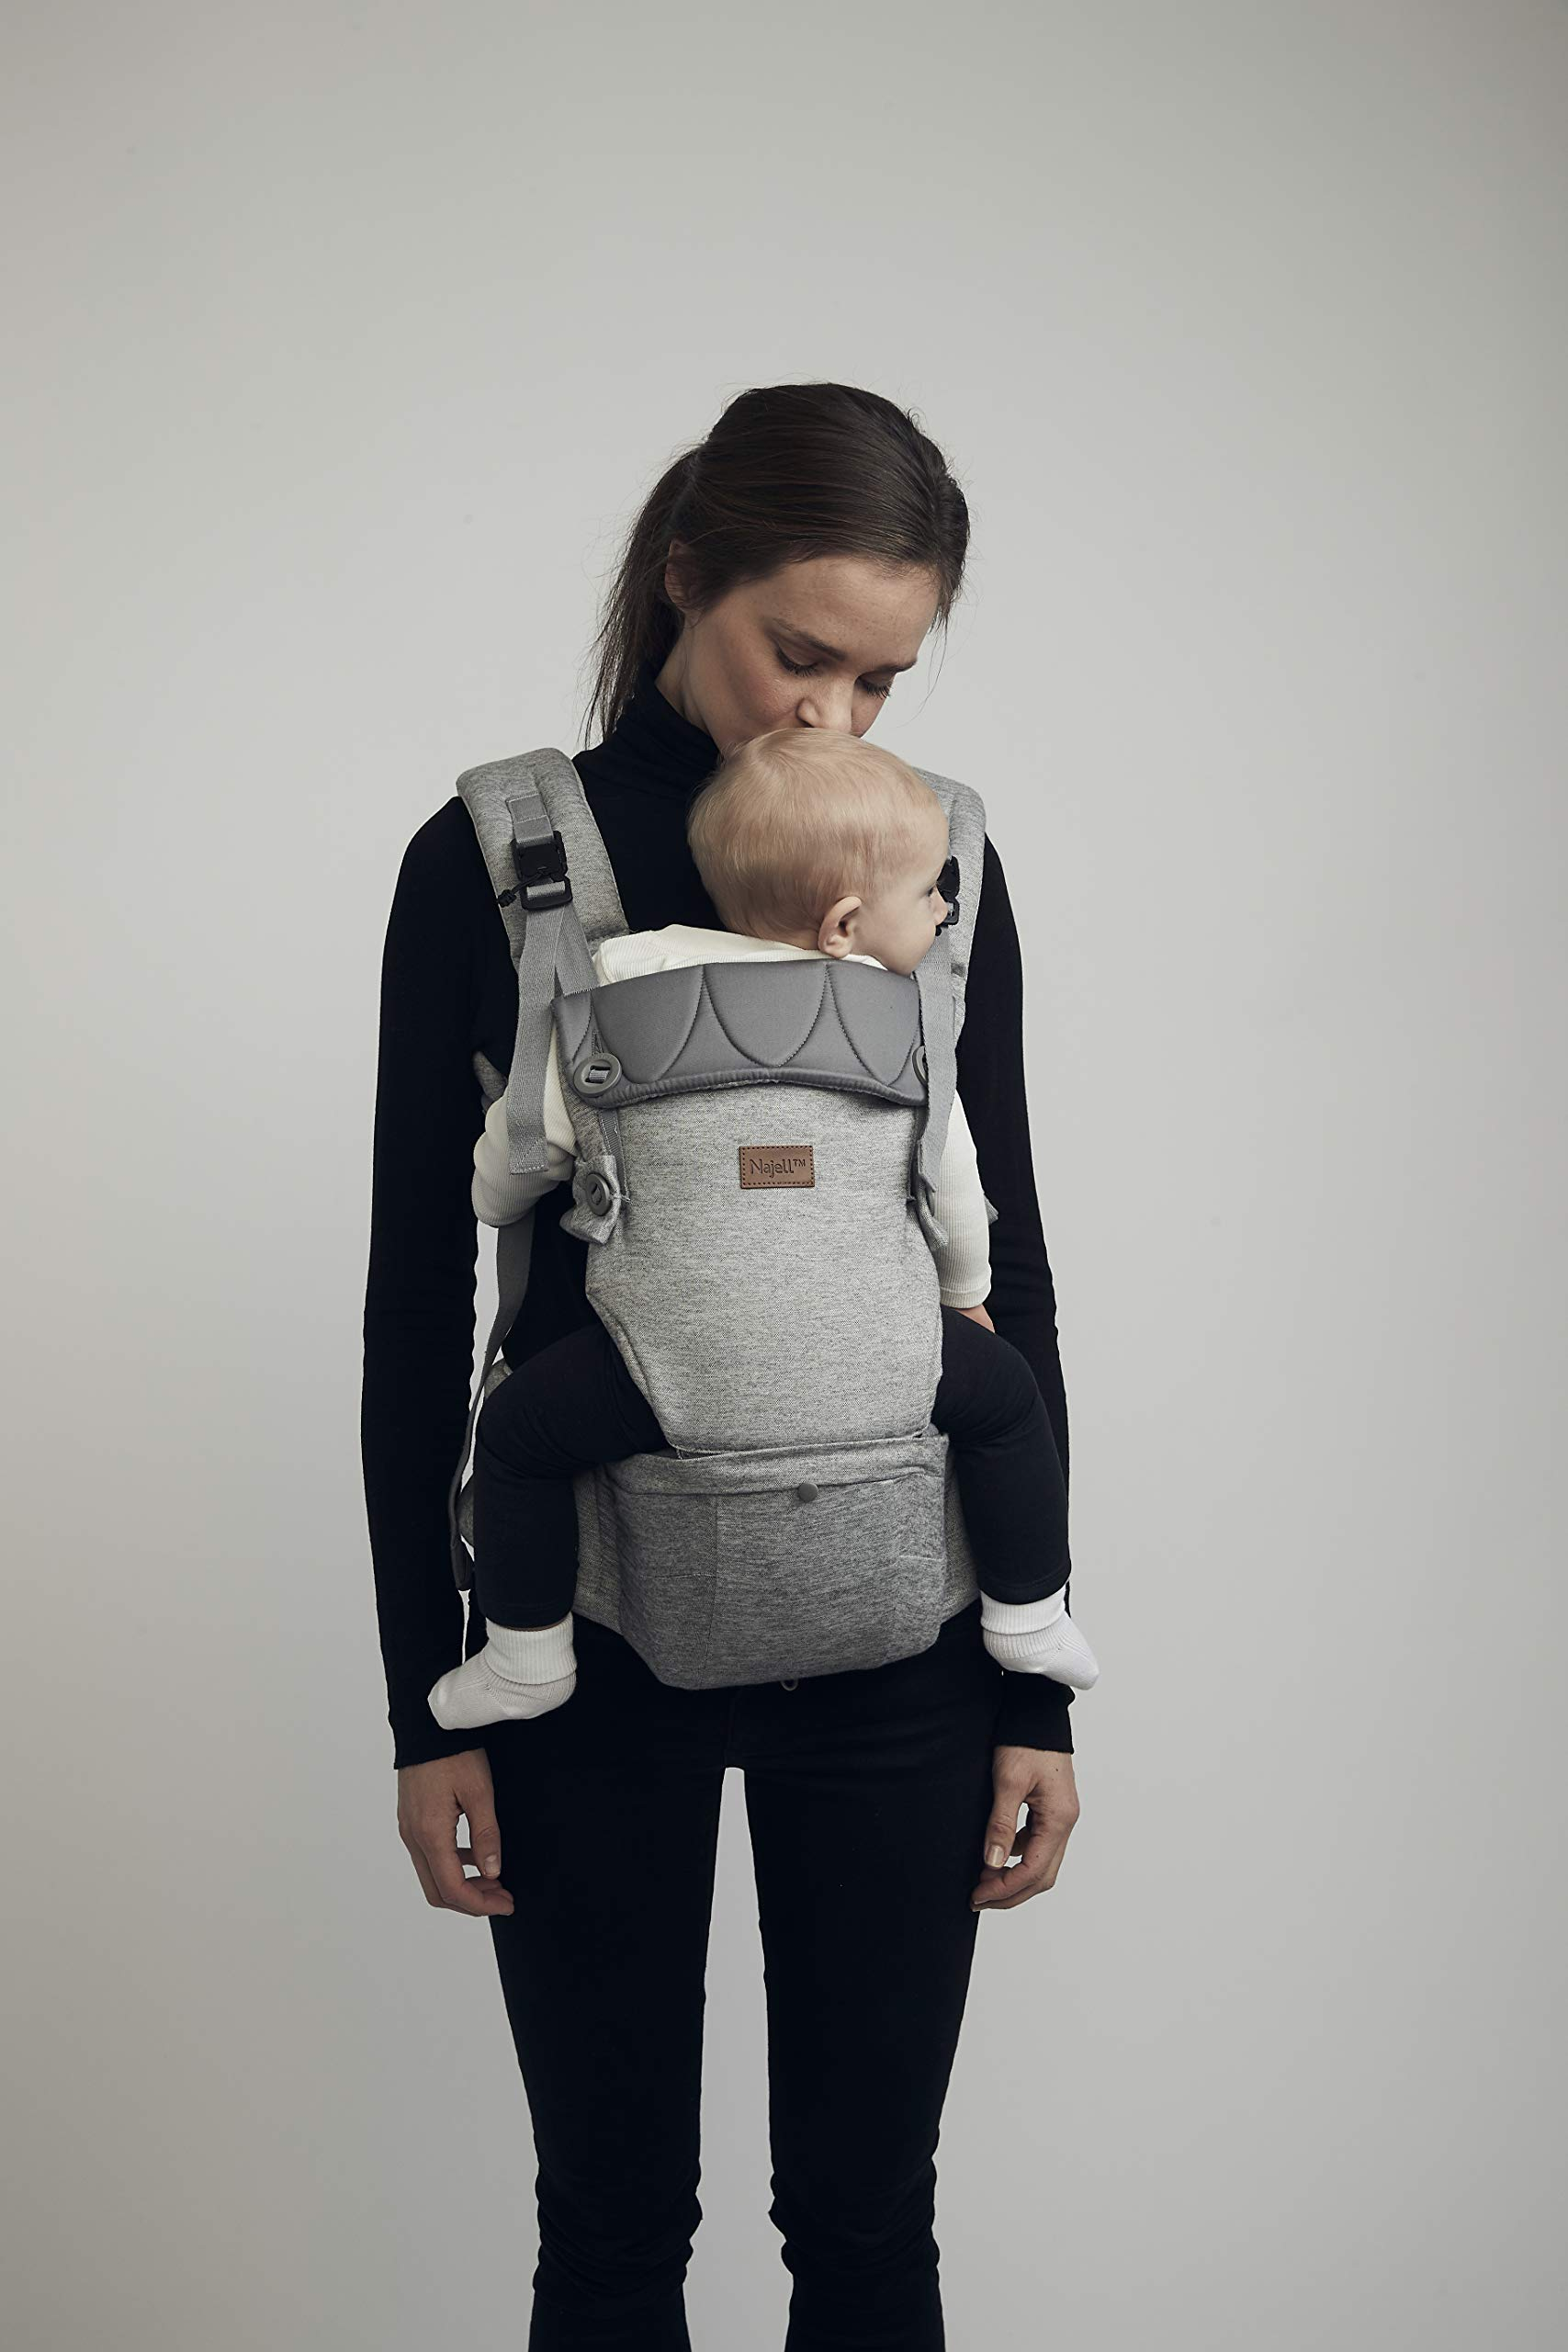 Najell Omni Active Mesh Baby Carrier with Hip Seat, Brilliant Black Béaba New-born ergonomic position and hips seat from 6 months. Market leading weight distribution with hip seat, recommended by the international hip dysplasia institute as a hip-healthy baby carrier Weight: 3, 5 to 15 kg and age: new-born to 3 years. 20